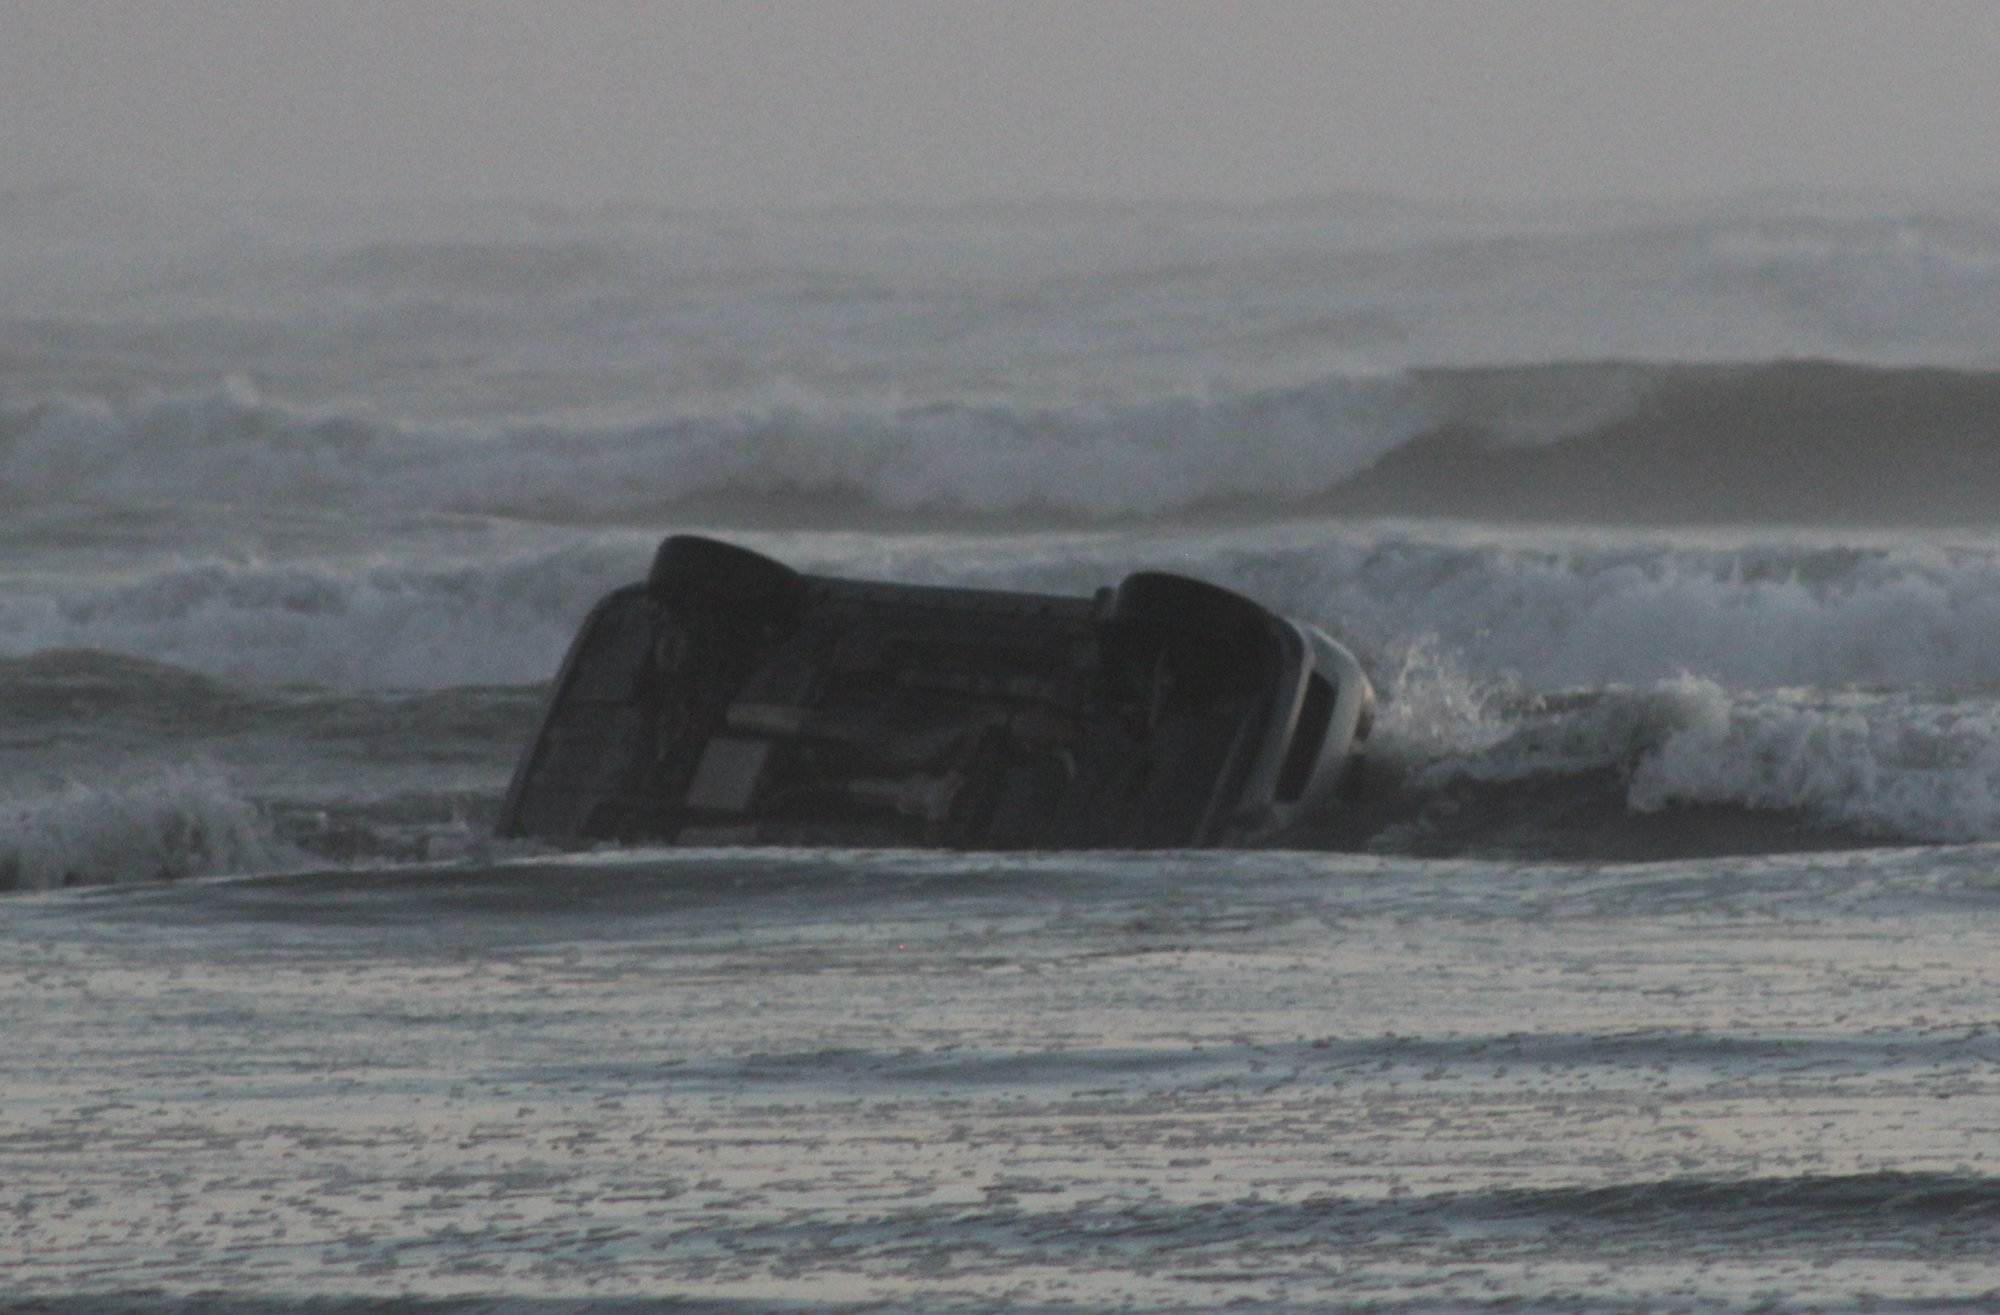 Car in surf.jpg